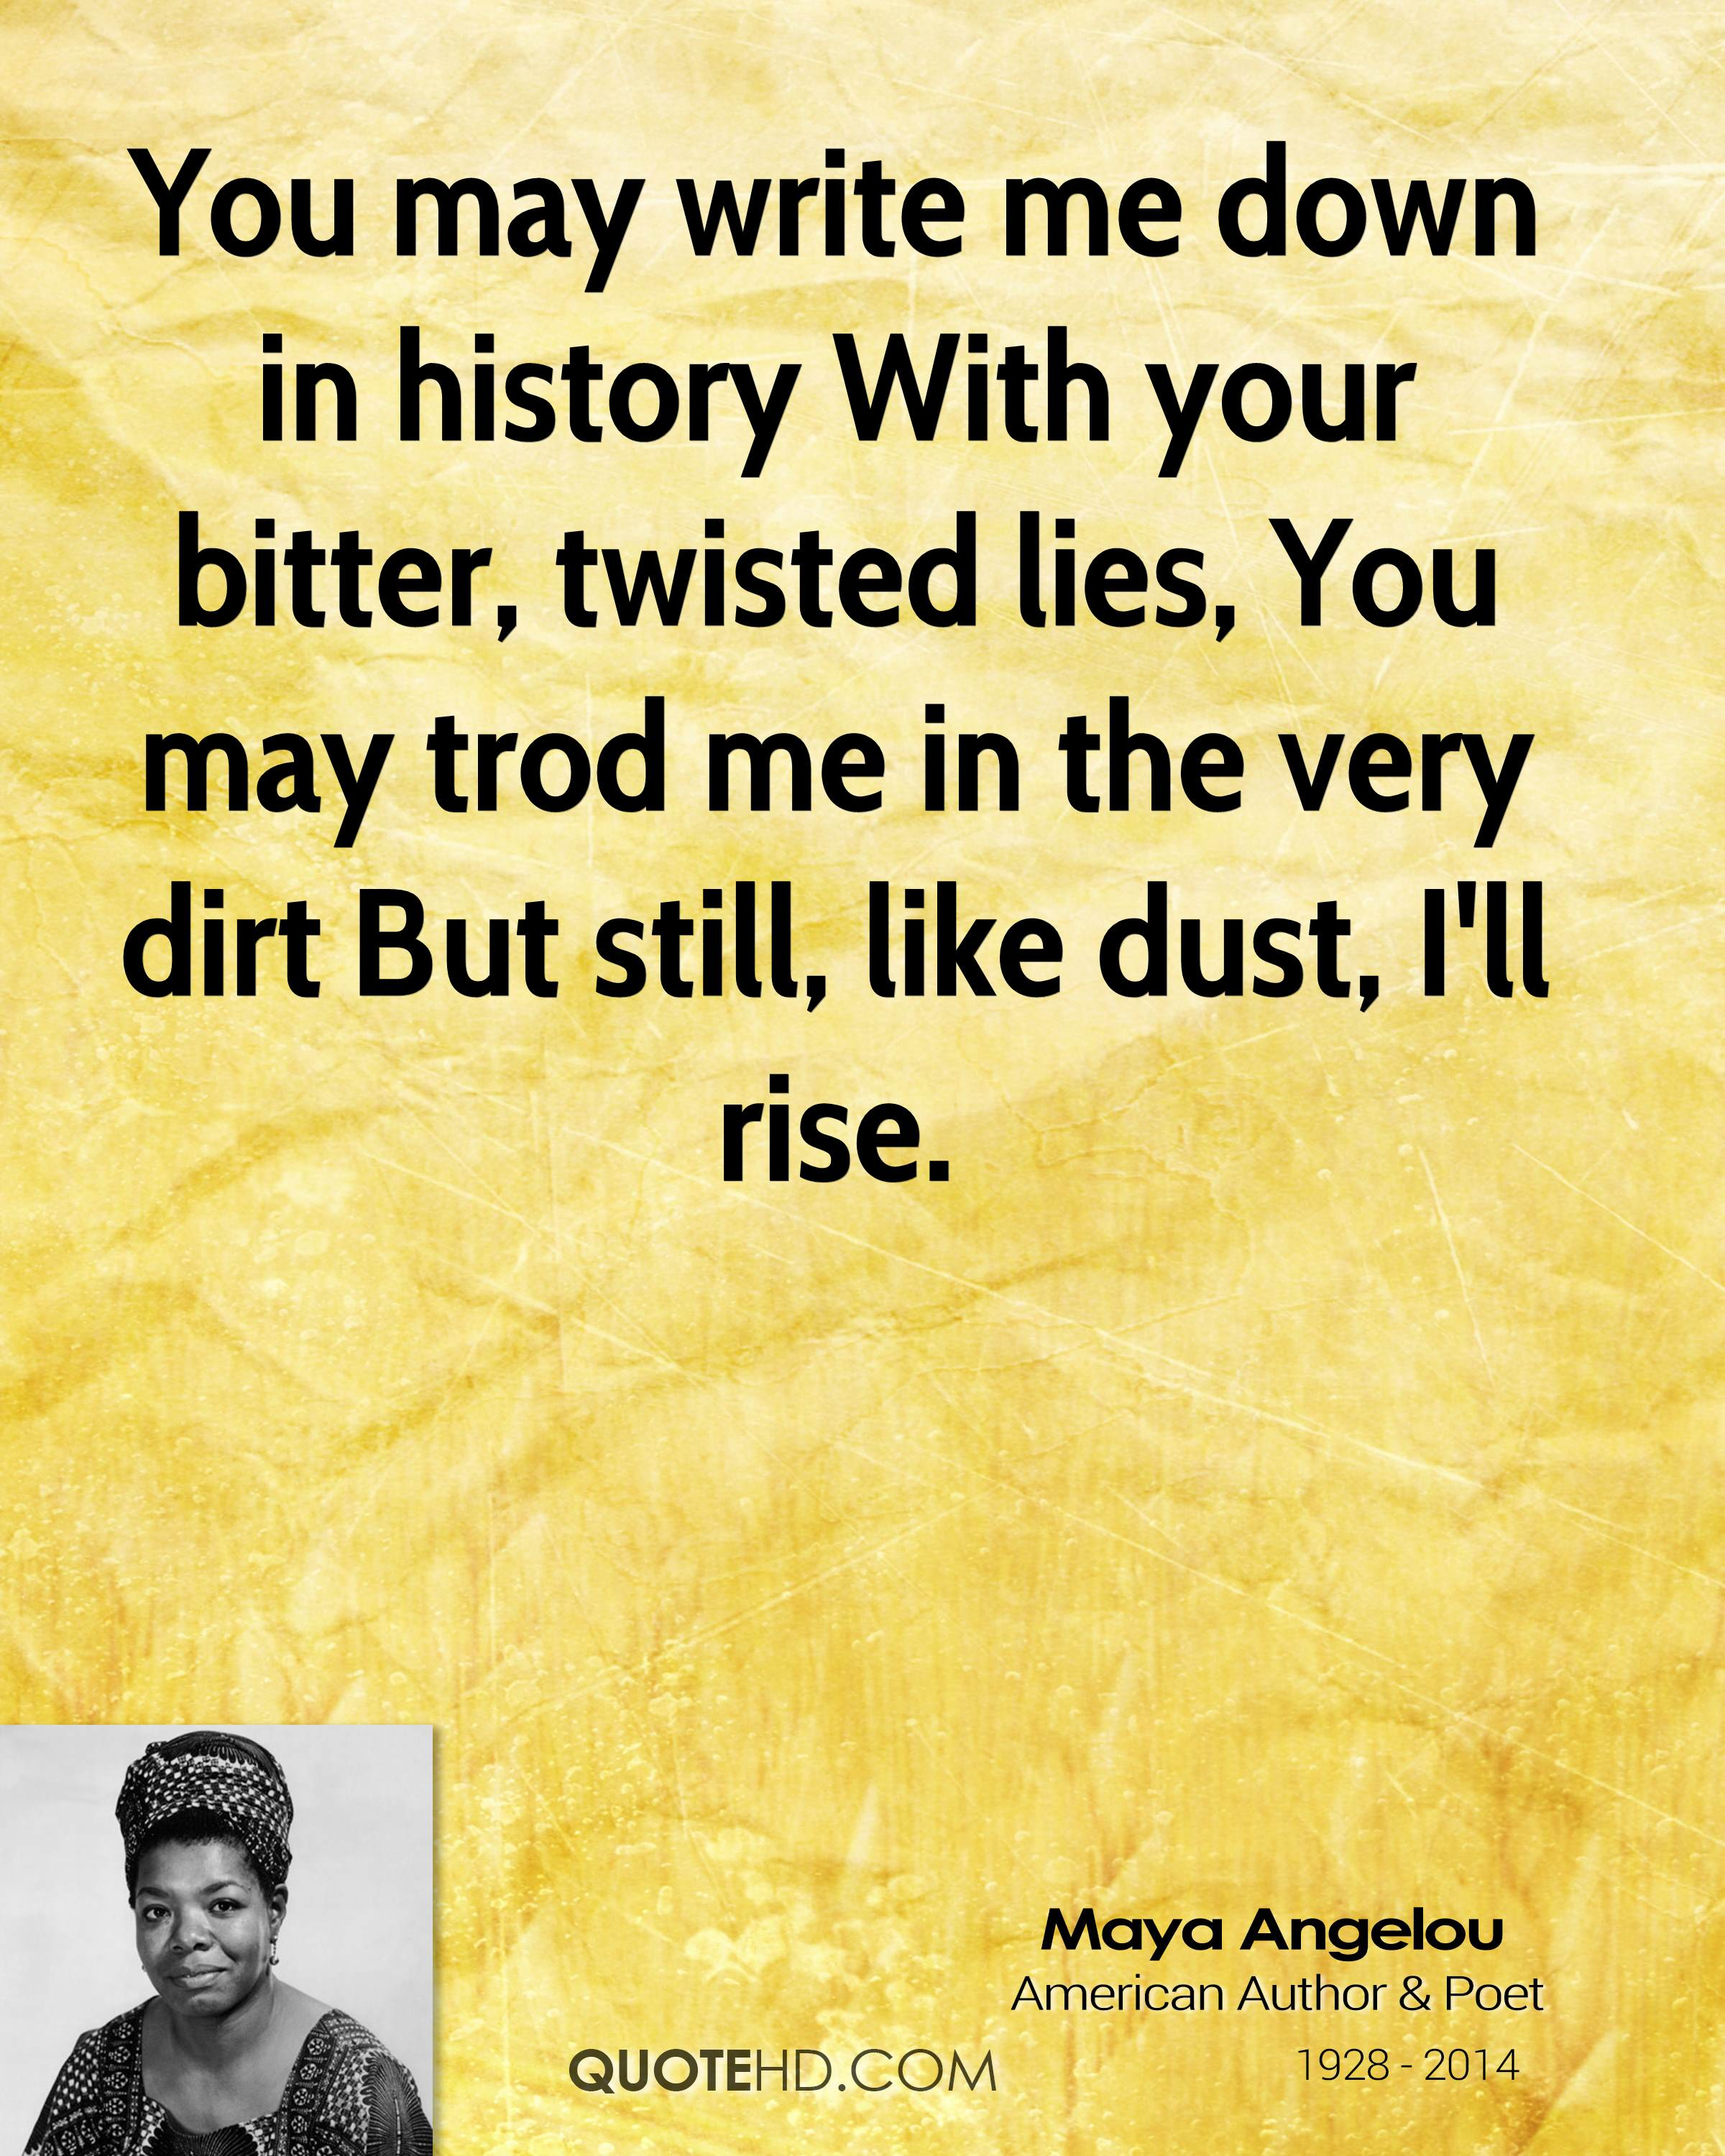 http://cdn.quotesgram.com/img/29/44/1671573381-maya-angelou-quote-you-may-write-me-down-in-history-with-your-bitter.jpg